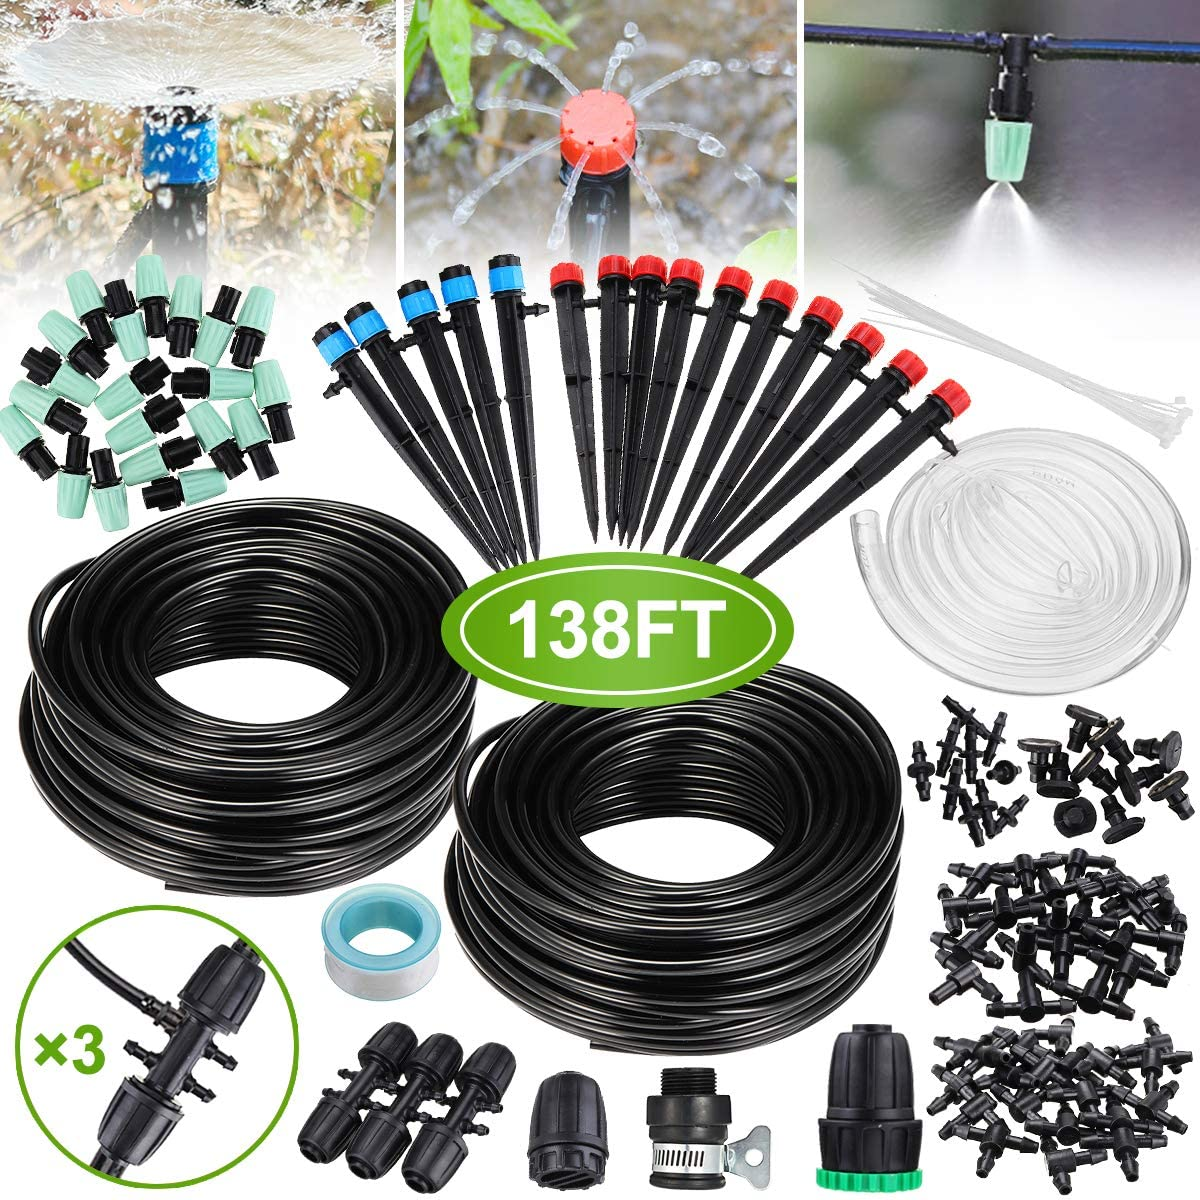 Micro Drip Irrigation Kit,king do way 42m/138ft Garden Irrigation System with Adjustable Nozzle Sprinkler Sprayer&Dripper Automatic Patio Plant Watering Kit Misting Cooling System for Greenhouse,Lawn